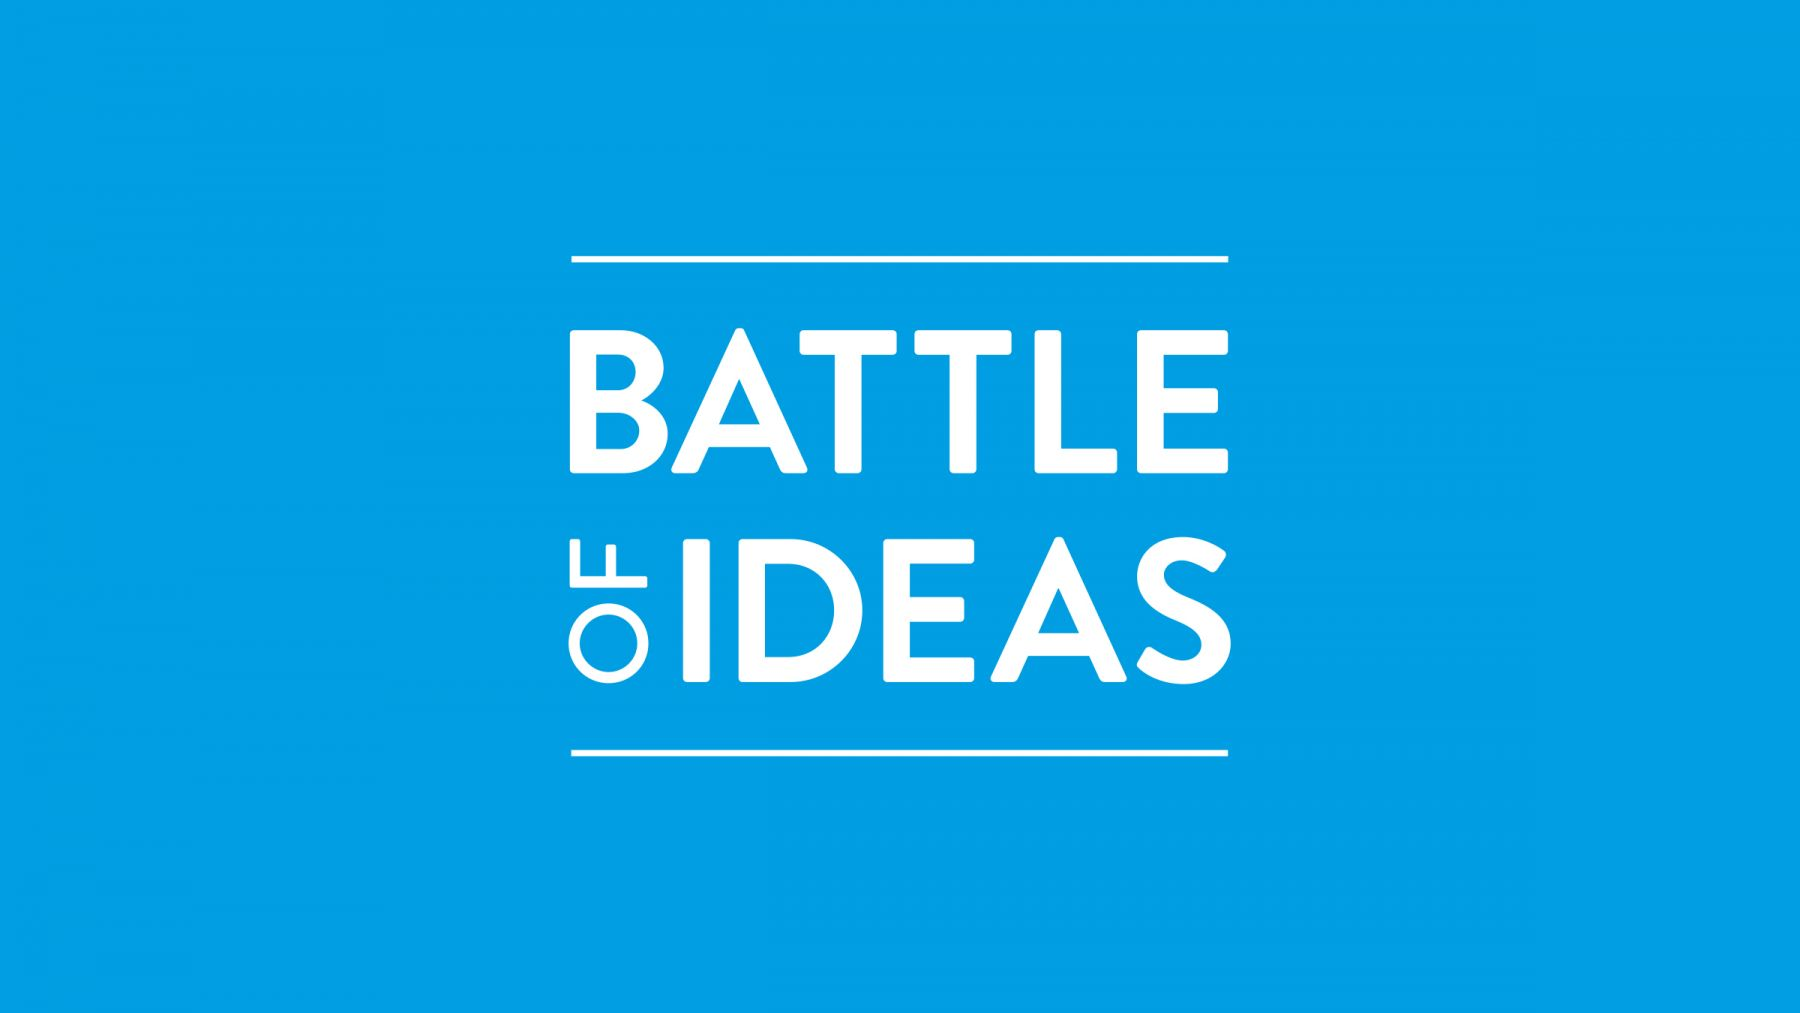 New Battle of Ideas logo design